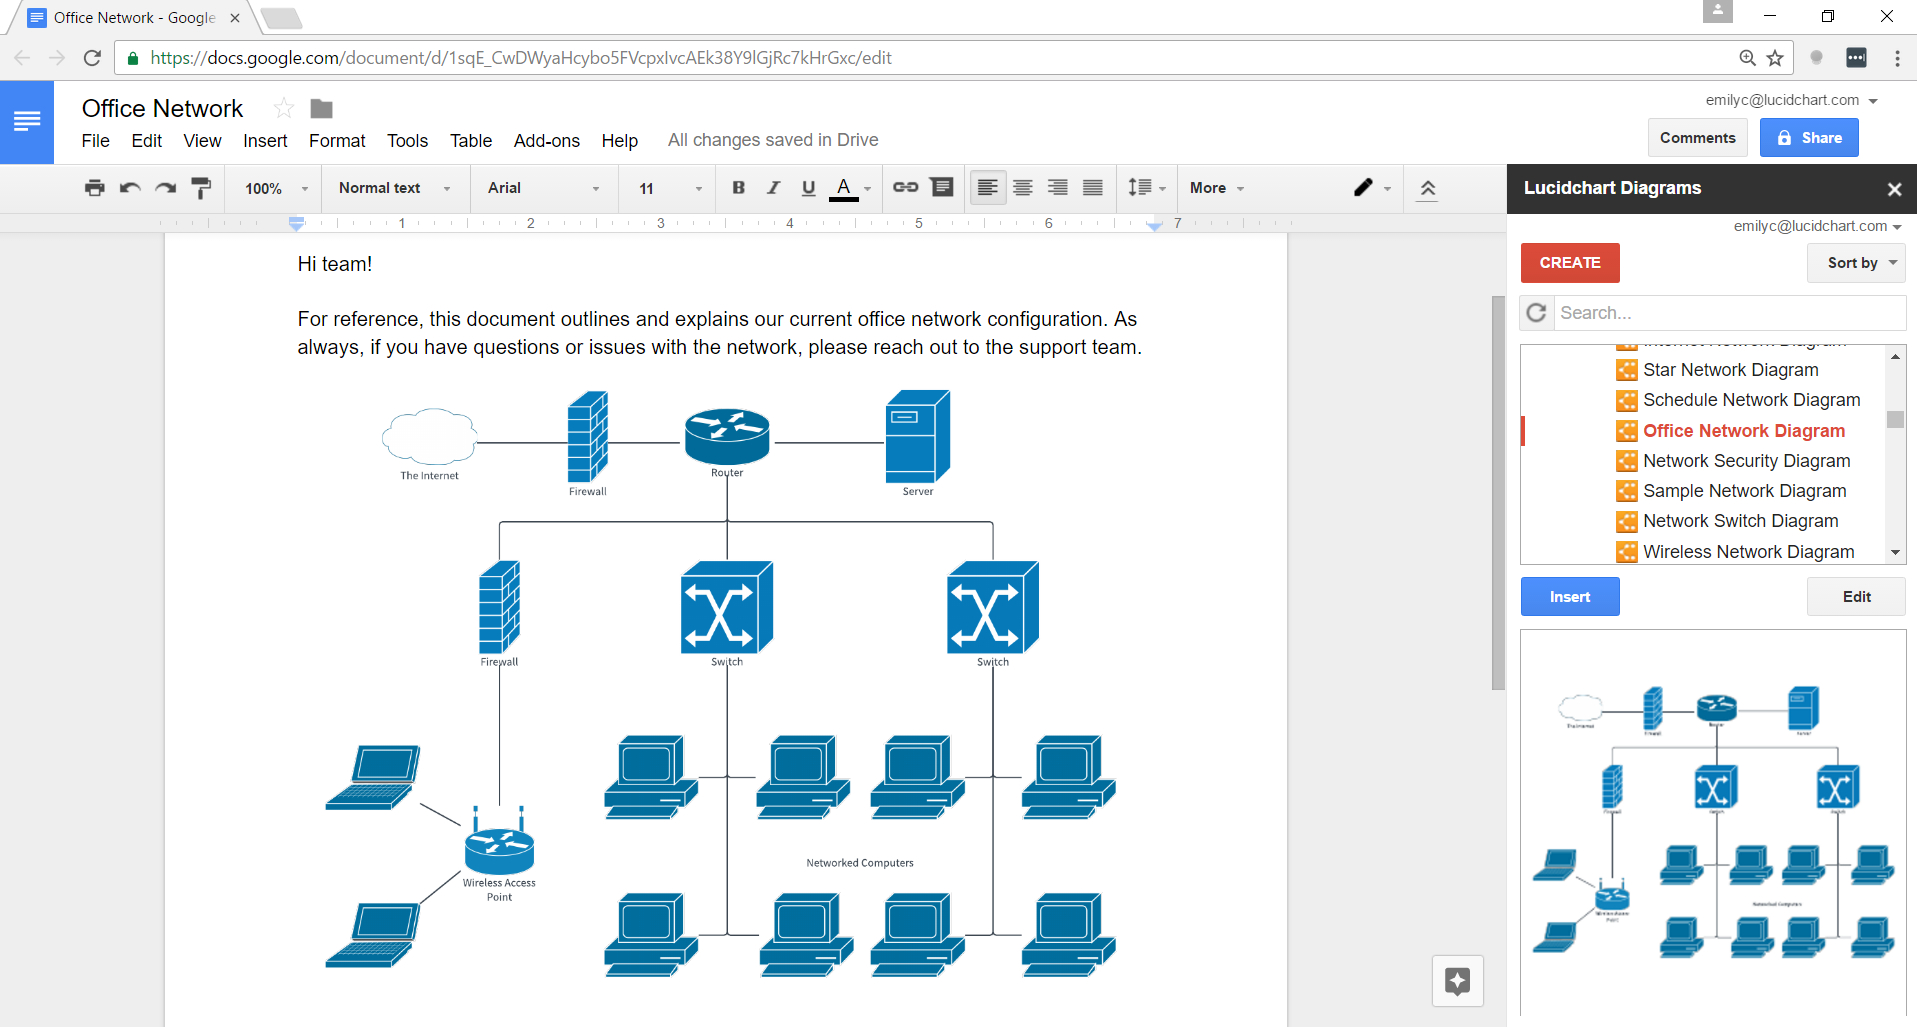 Google Spreadsheets Map Wizard Tool Throughout How To Make A Flowchart In Google Docs  Lucidchart